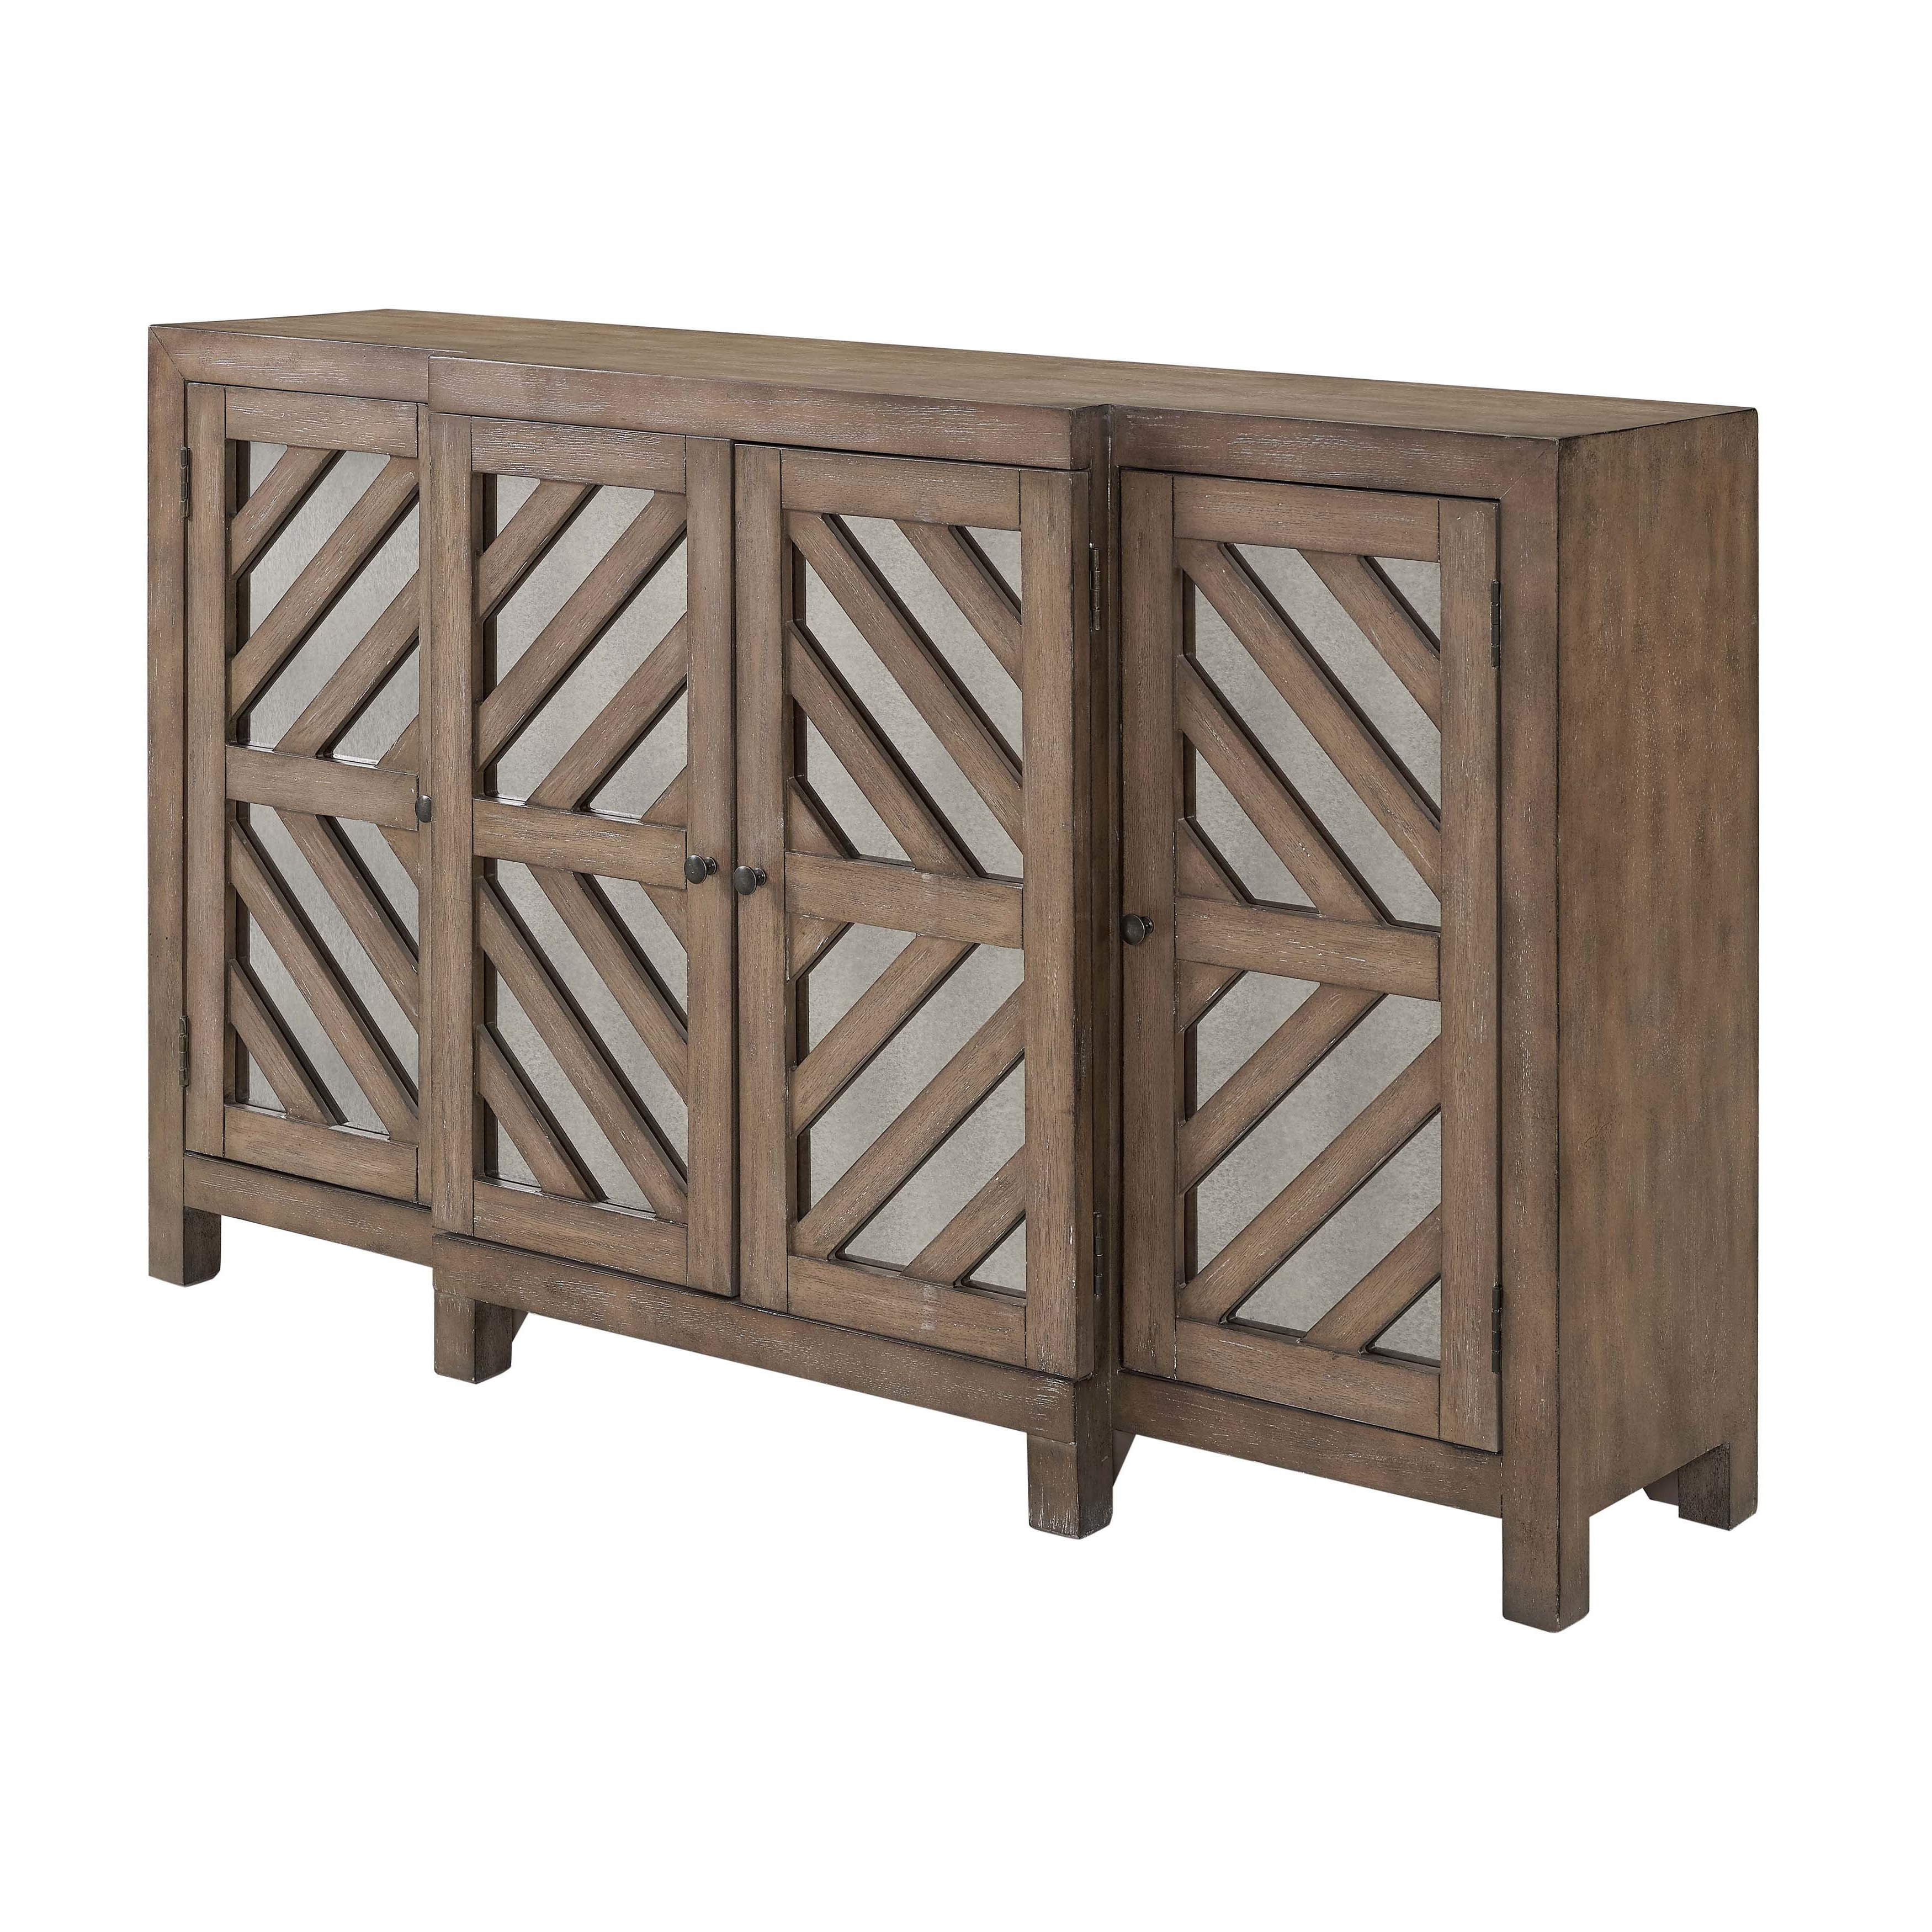 Farmhouse & Rustic Sideboards & Buffets | Birch Lane For Simple Living Antique White Kendall Buffets (View 17 of 20)